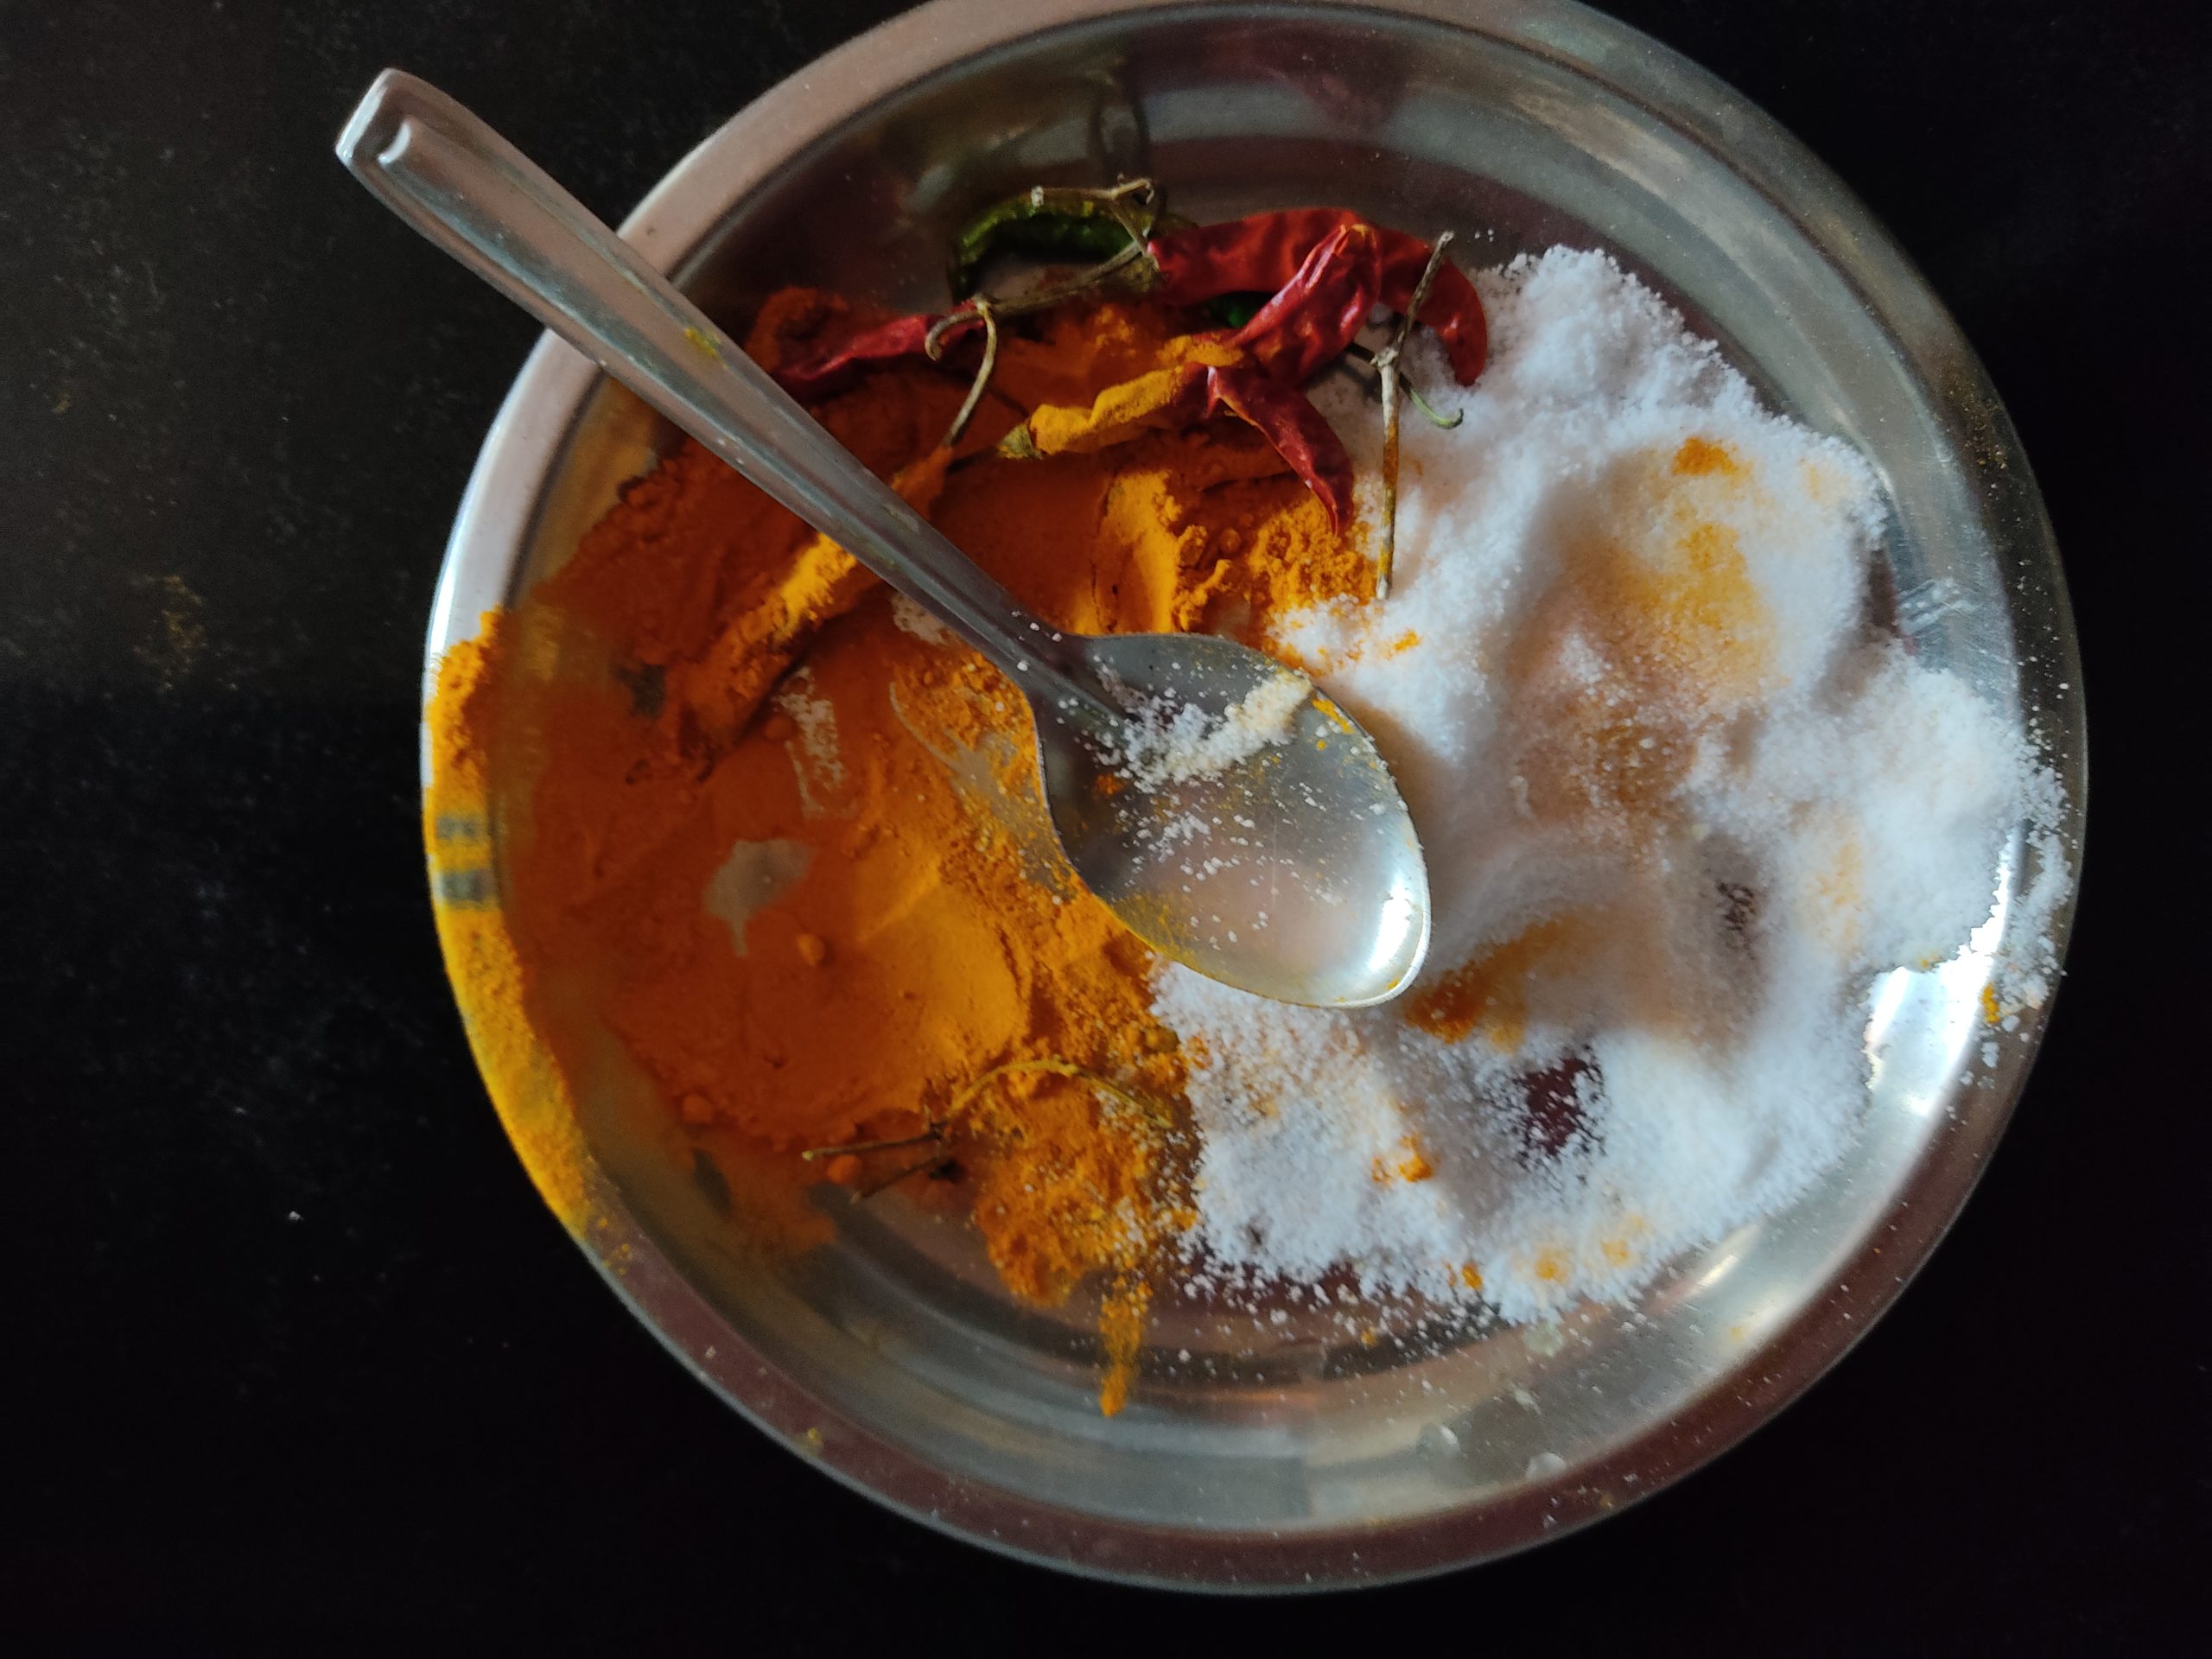 Salt and turmeric in a plate